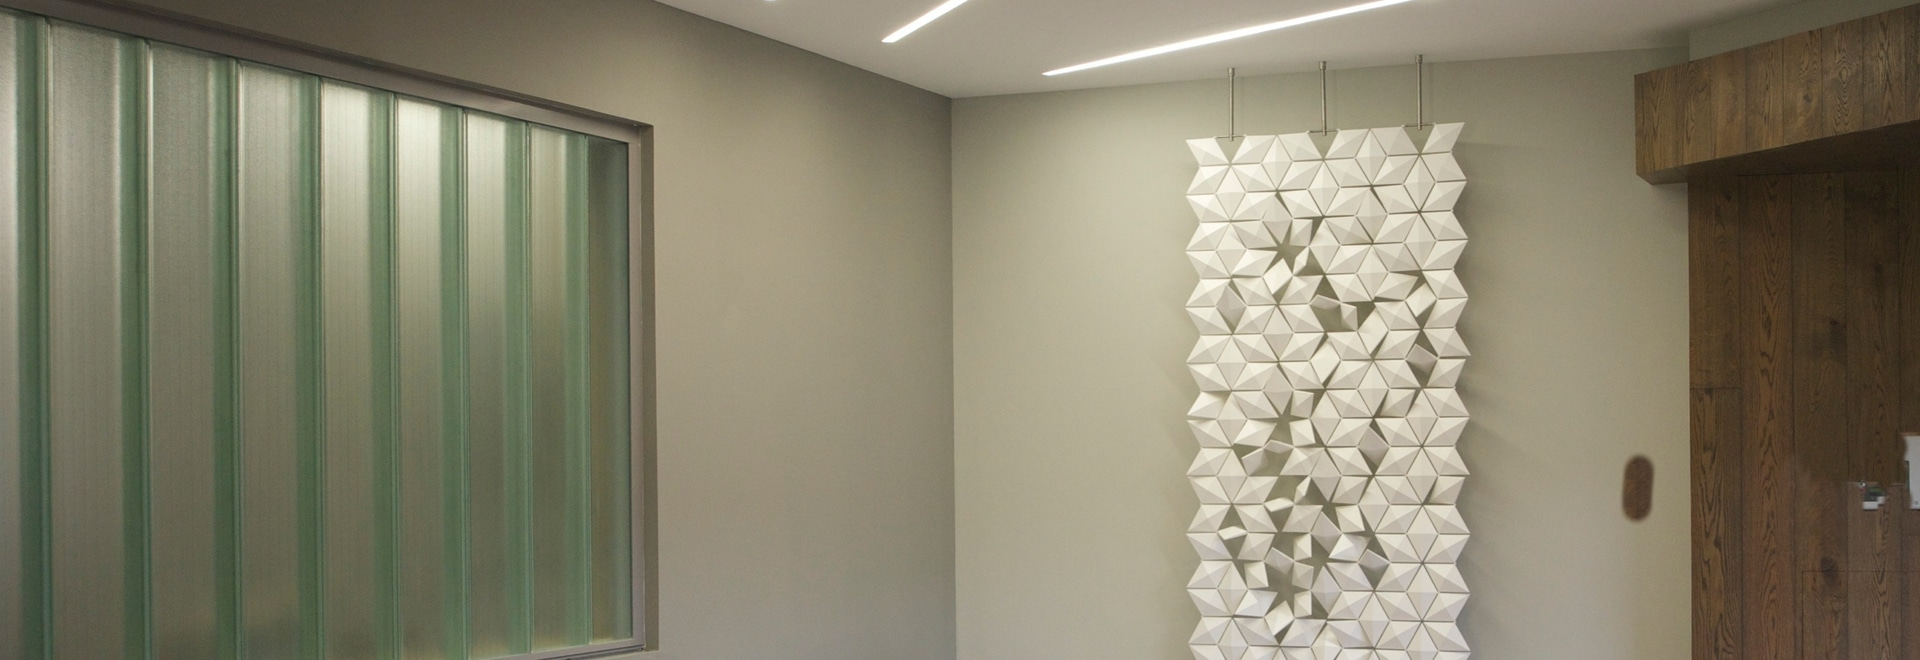 Decorative wall panel design which looks amazing klokgebouw 239 decorative wall panel design which looks amazing amipublicfo Images